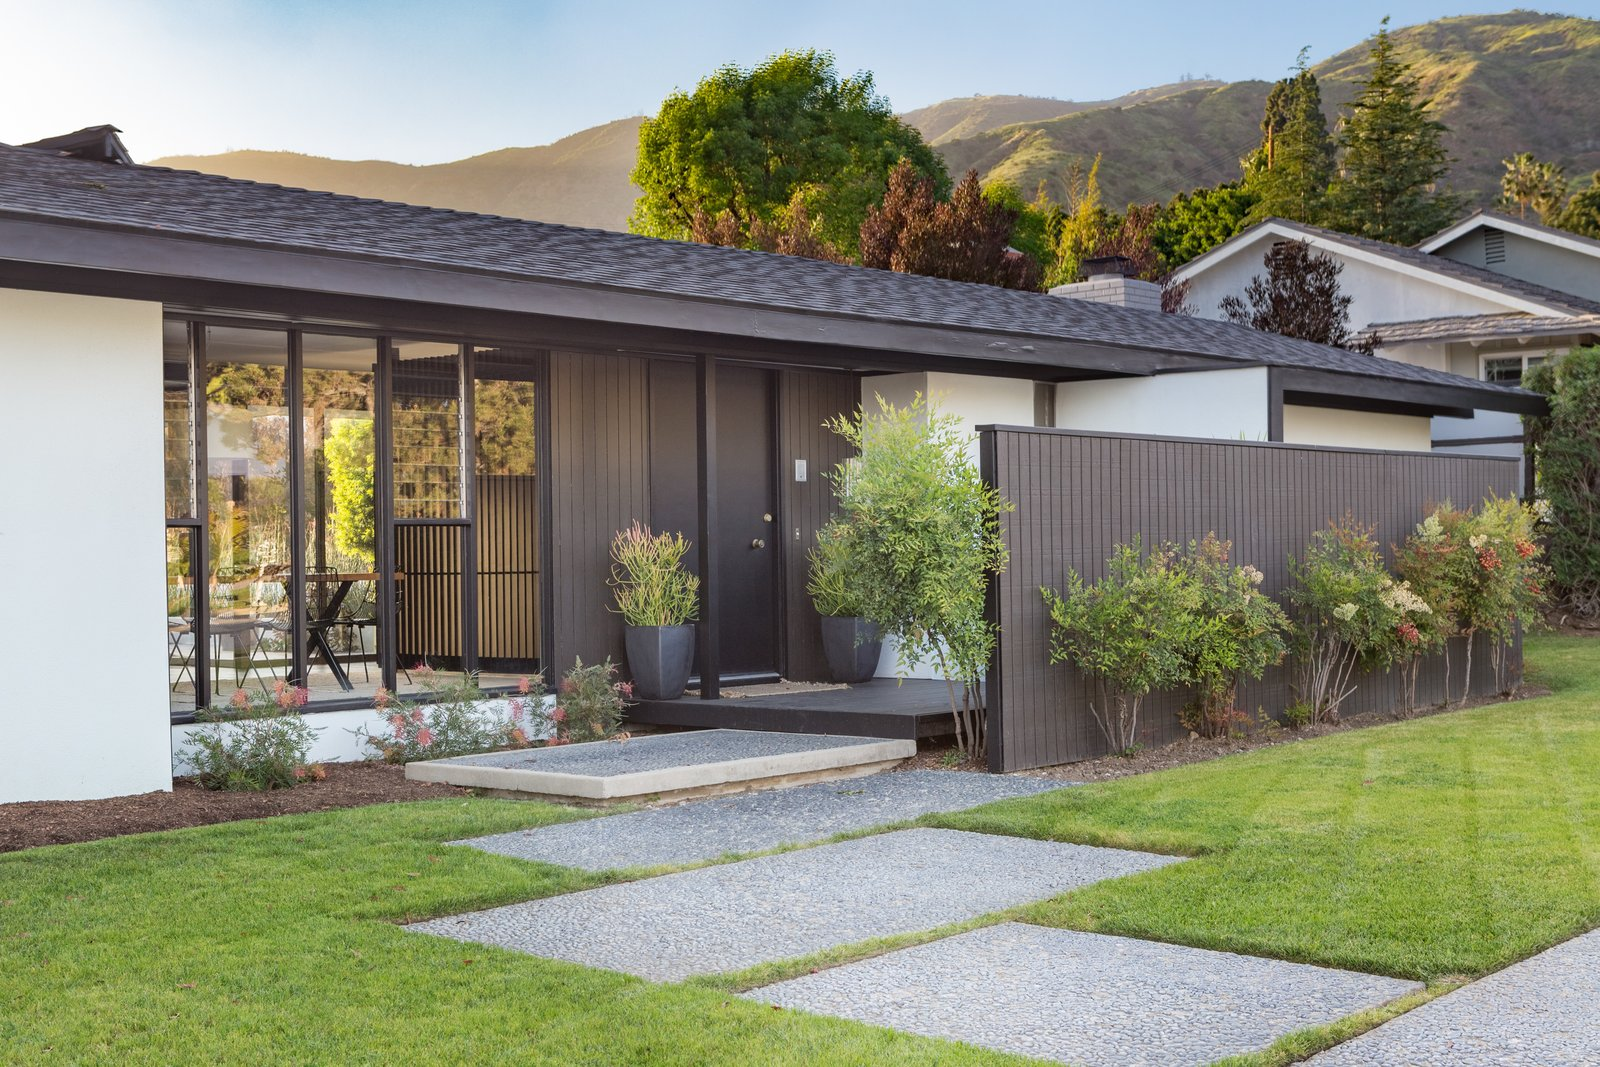 Exterior, House Building Type, Shed RoofLine, and Shingles Roof Material  Photo 11 of 14 in Offered at $899K, a Restored Midcentury Abode Shines in Southern California